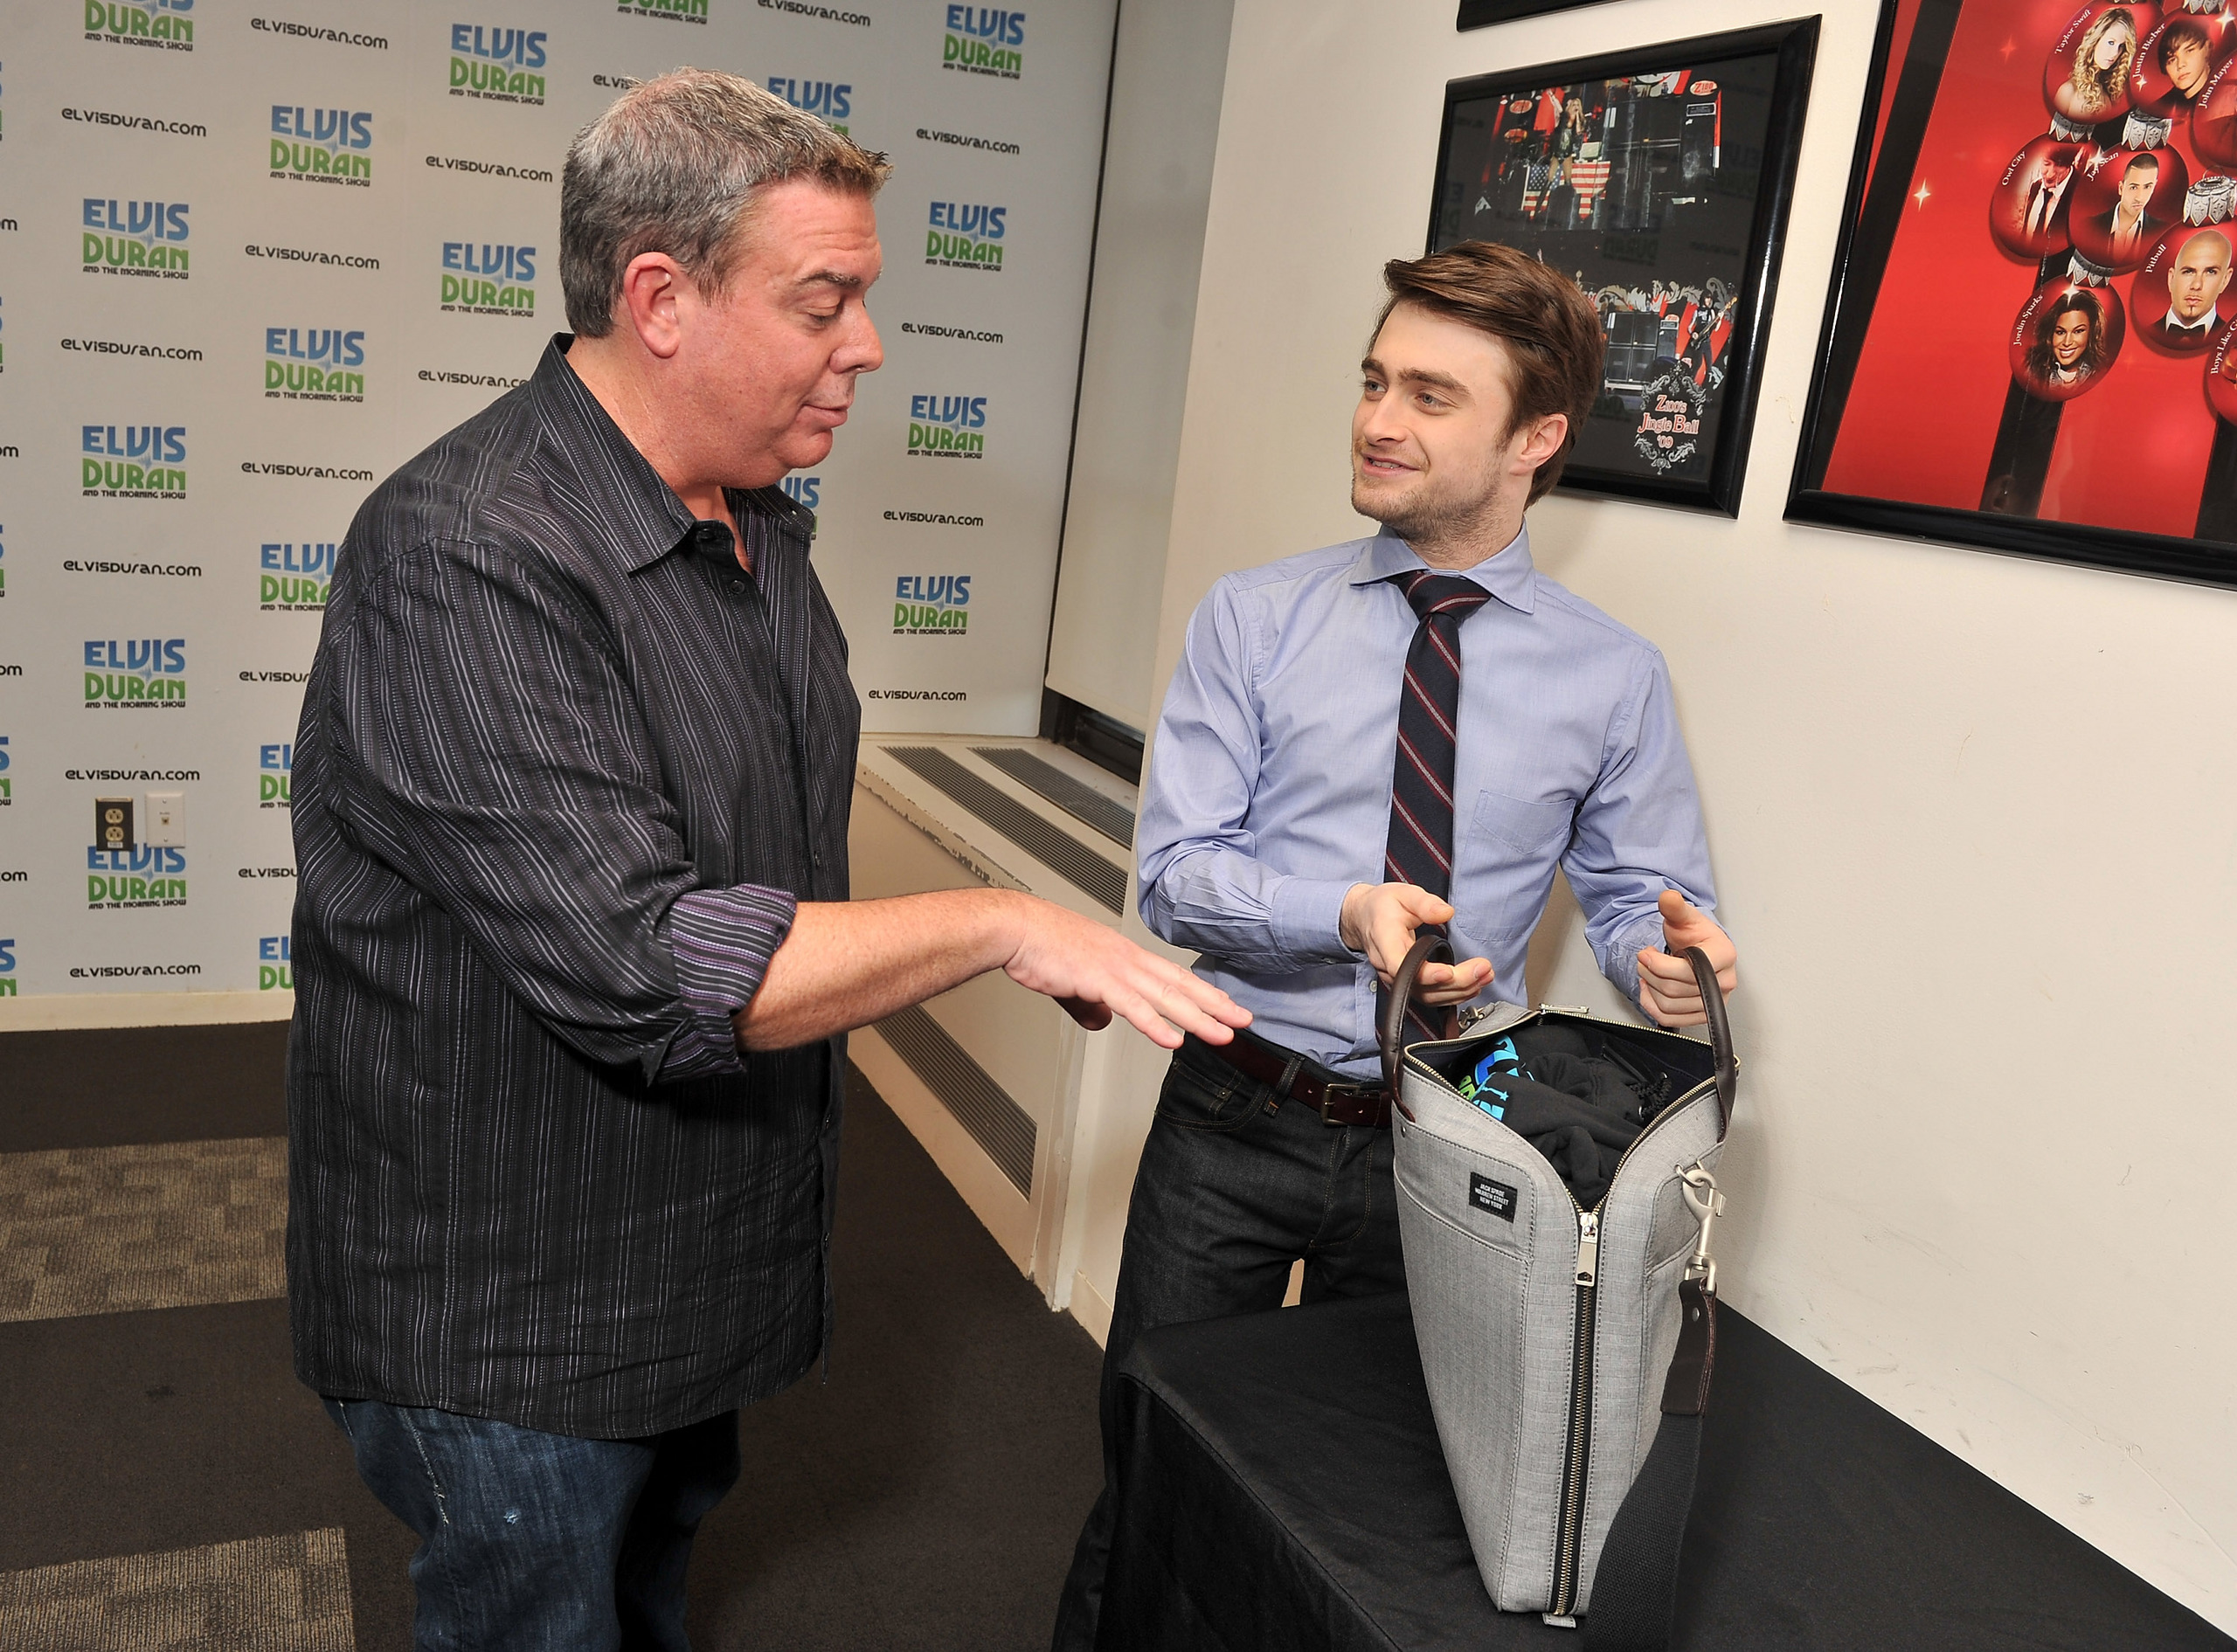 The Elvis Duran Z100 Morning Show - January 30, 2012 - HQ